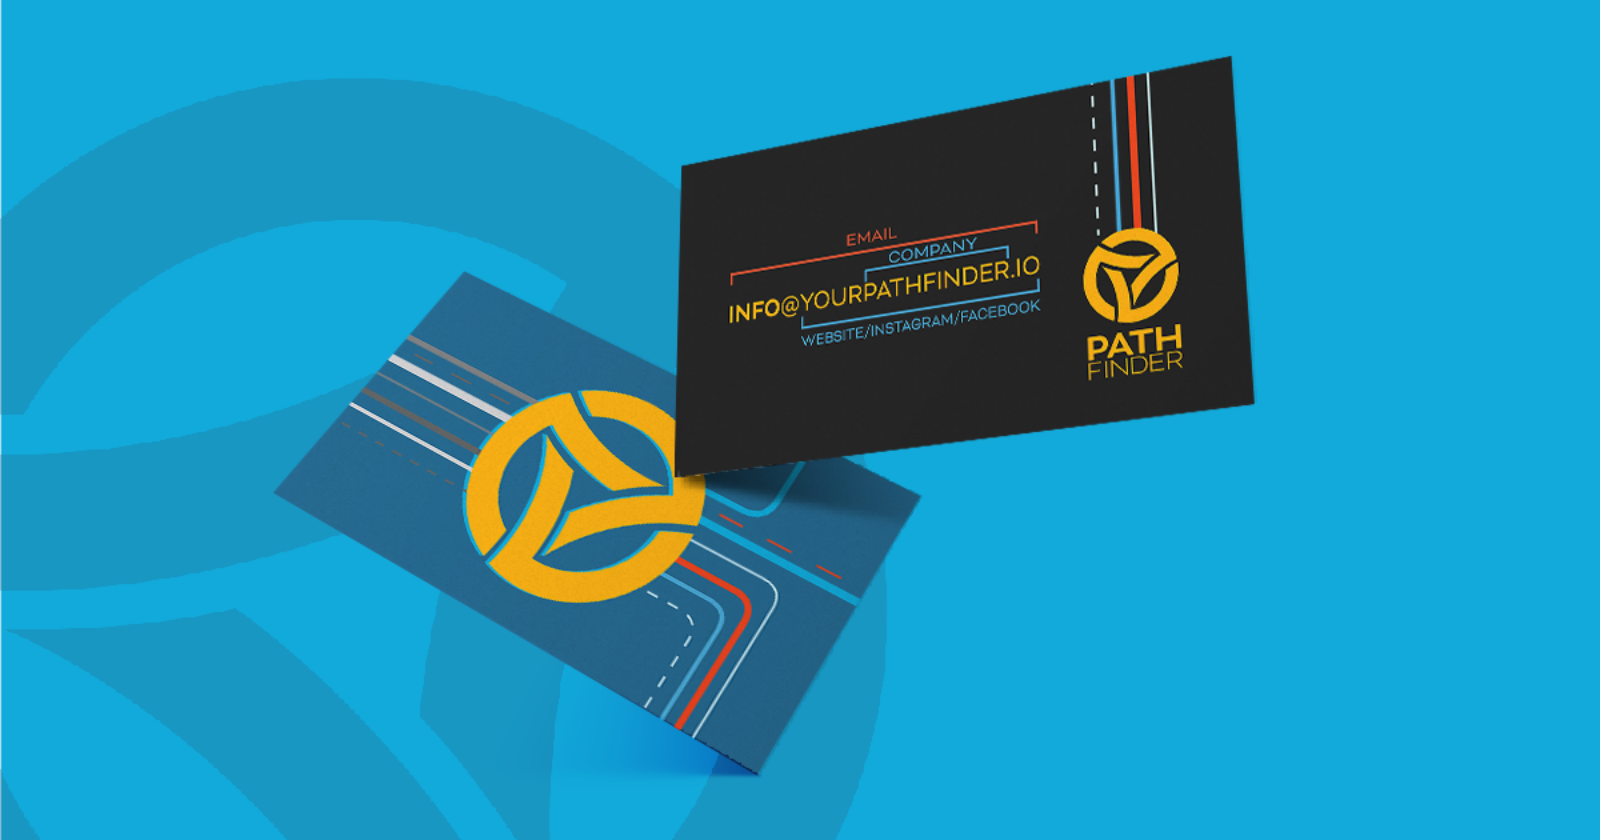 Are business cards relevant in the digital age?